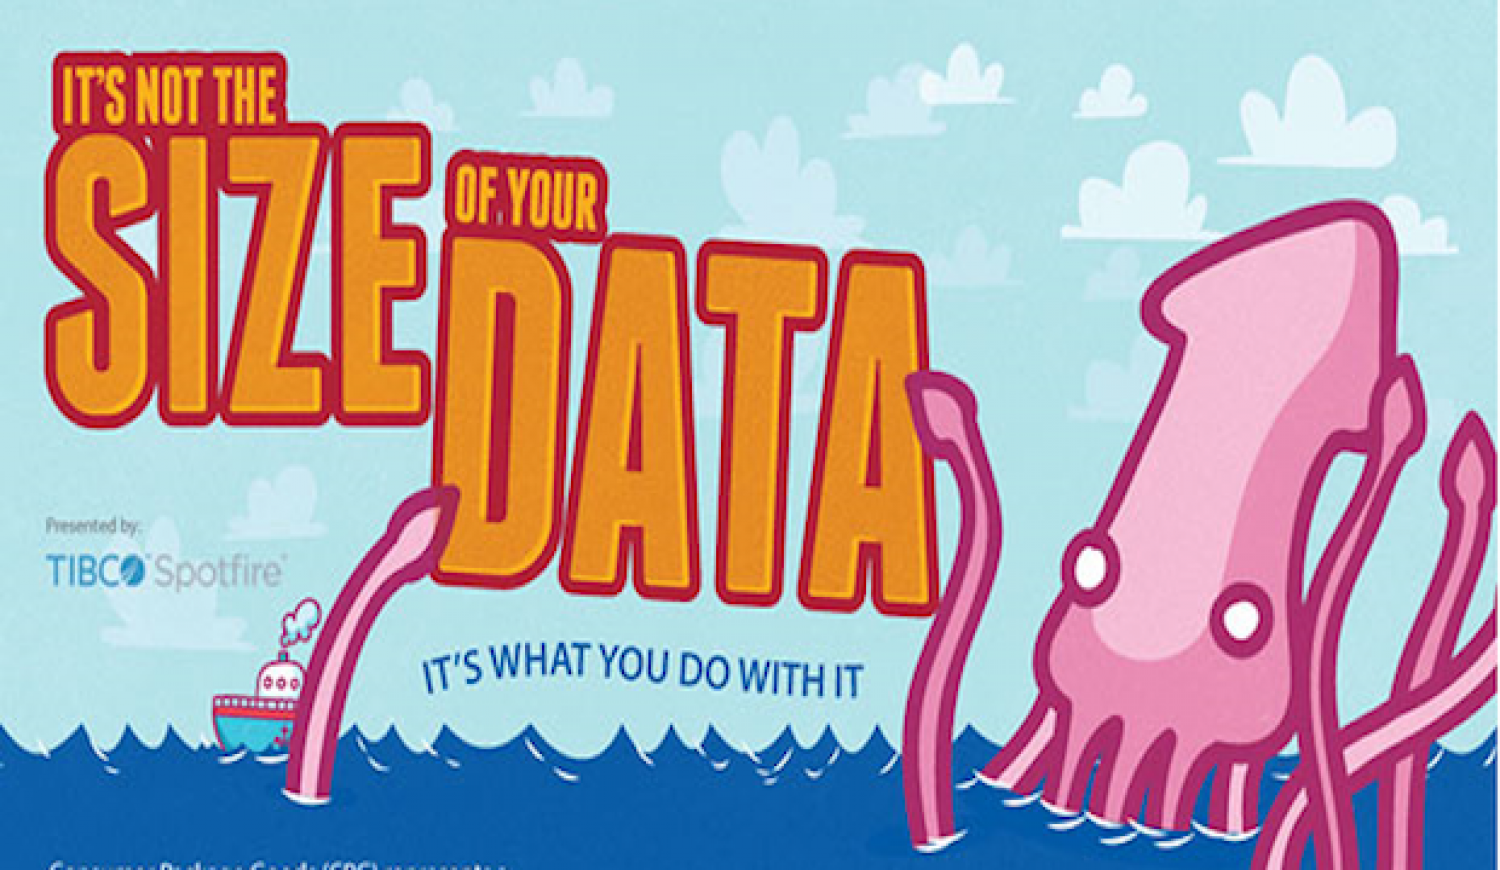 It's Not the Size of Your Data Infographic